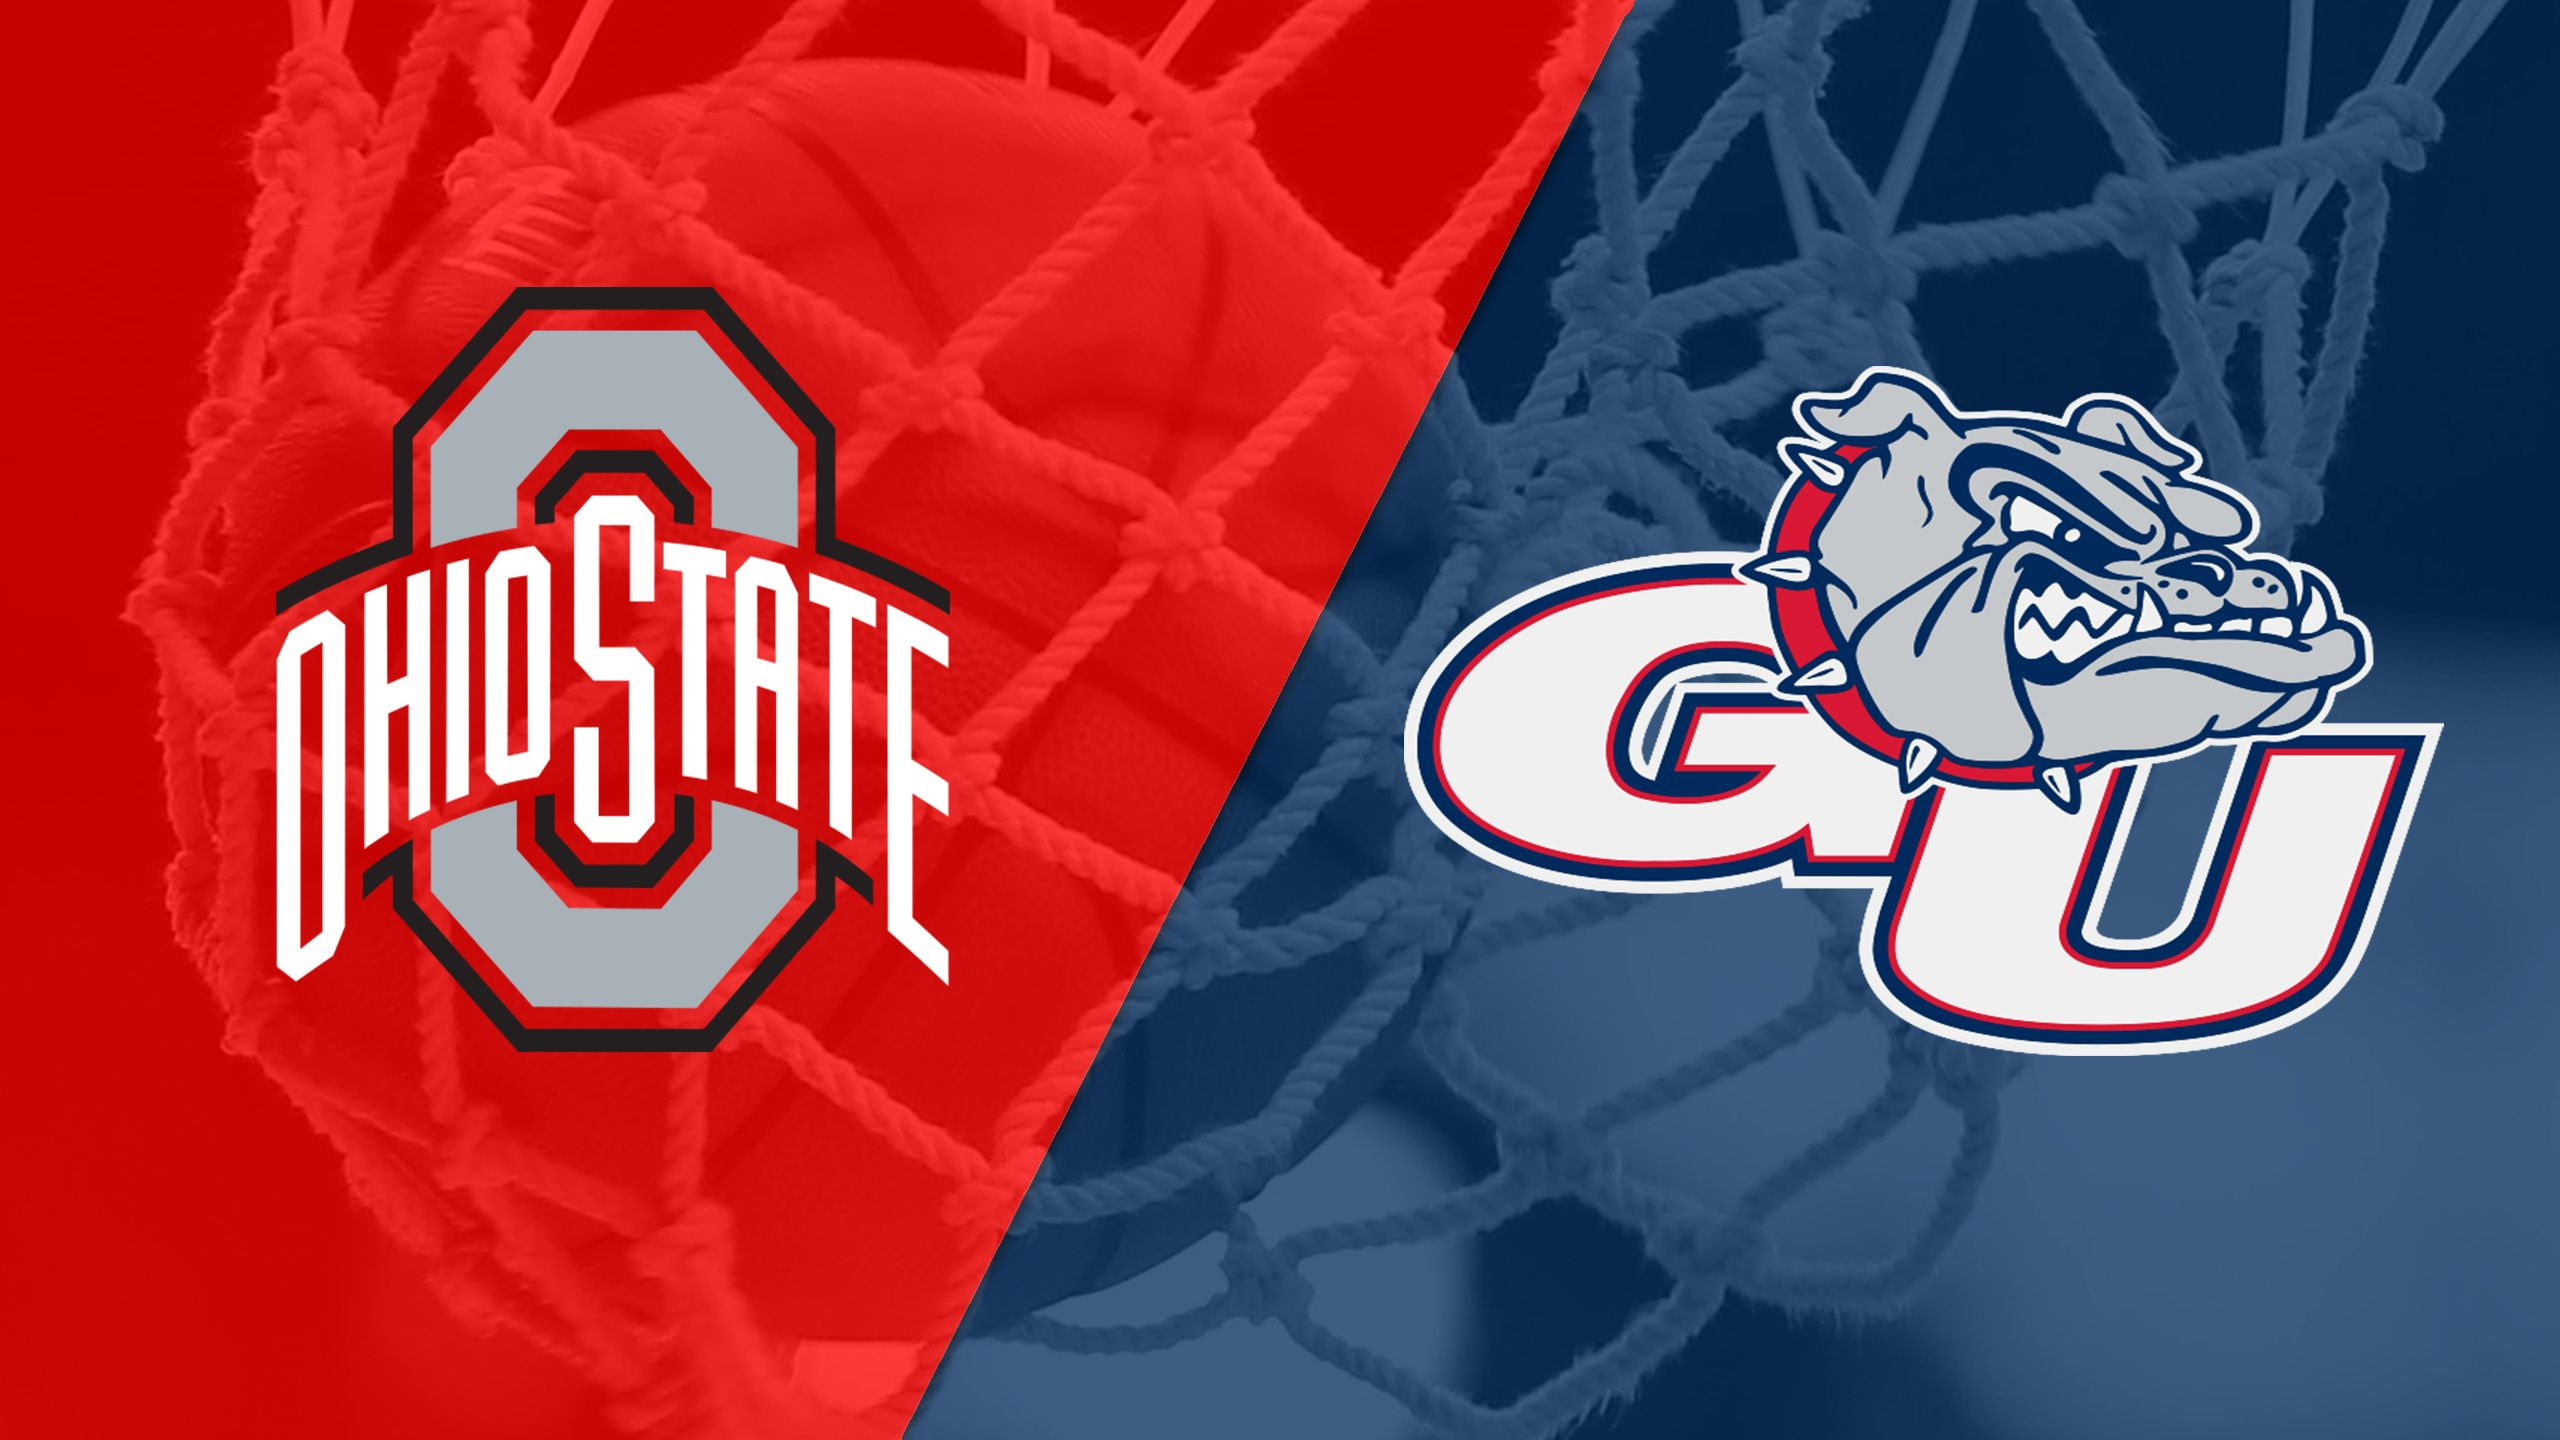 Ohio State vs. #17 Gonzaga (Quarterfinal #4) (PK80)